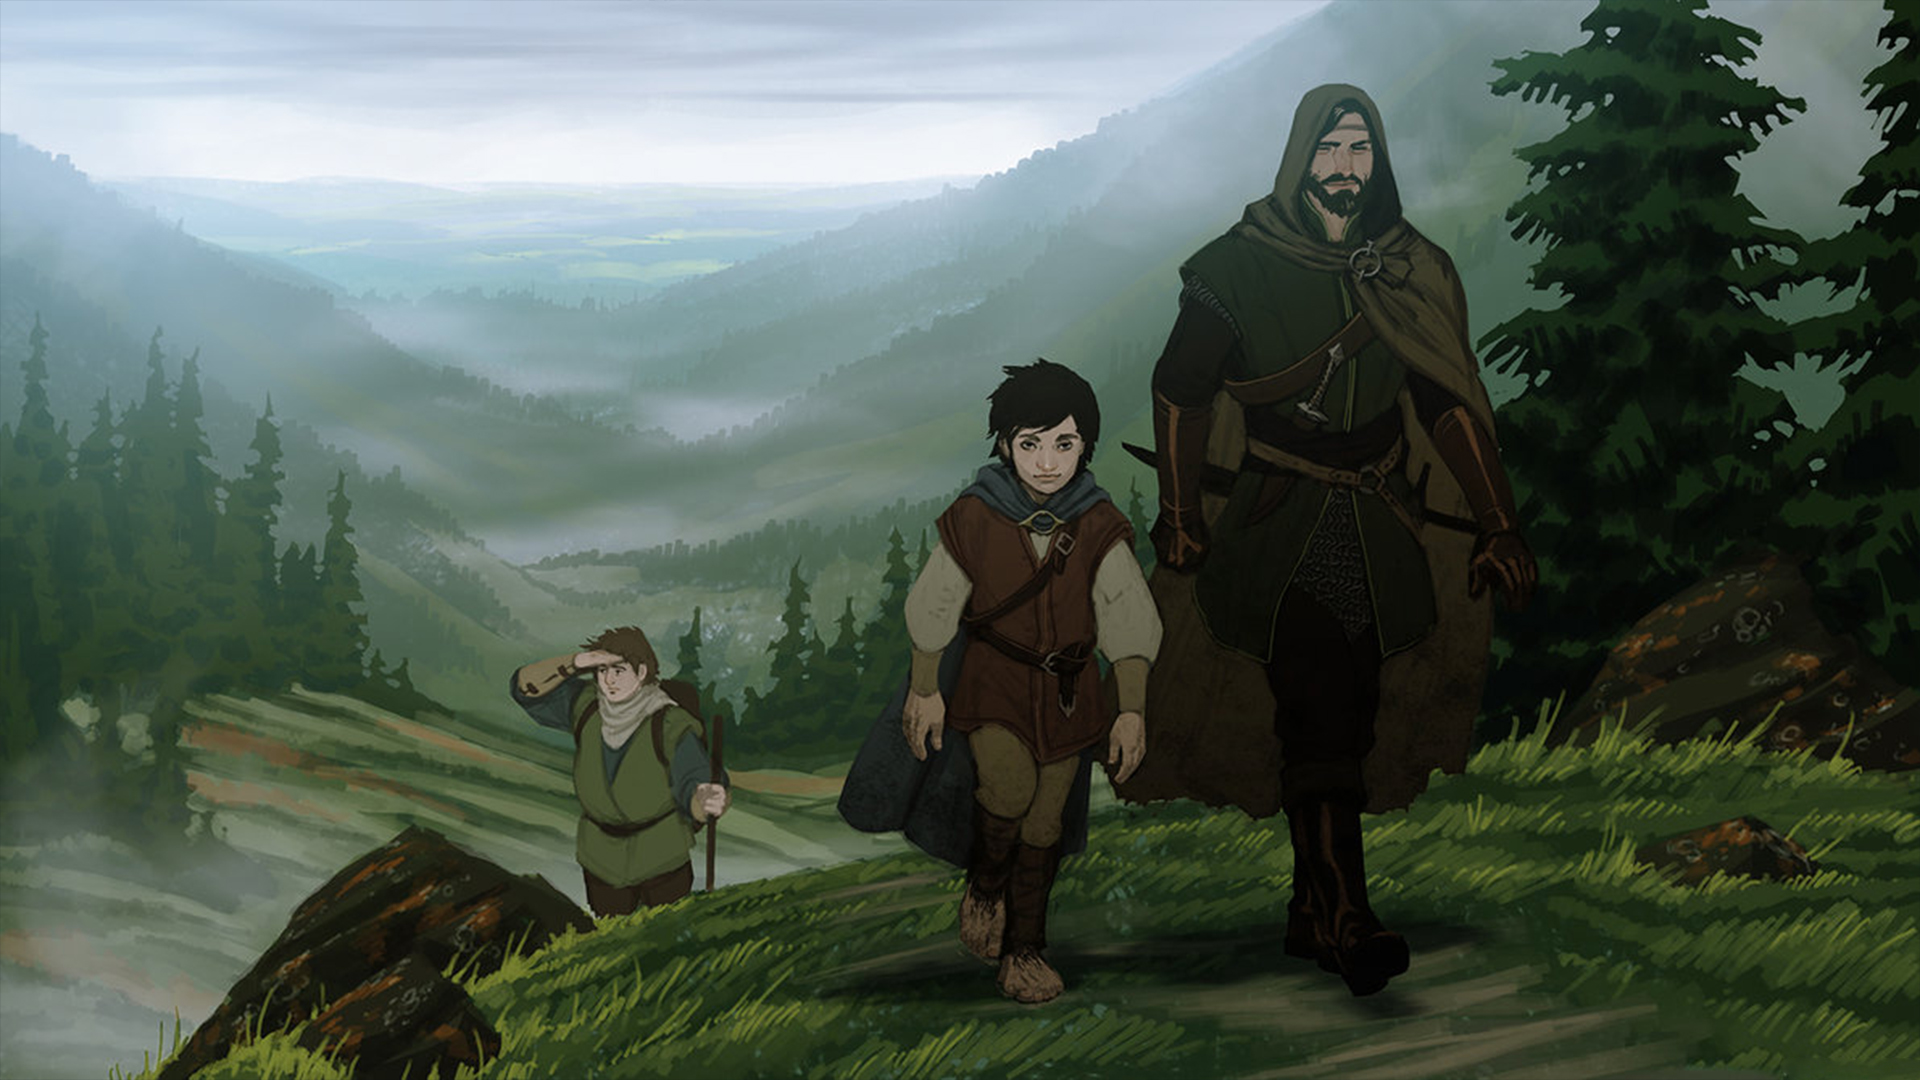 The Lord Of The Rings Art Wallpaper image - The Fellowship - Mod DB